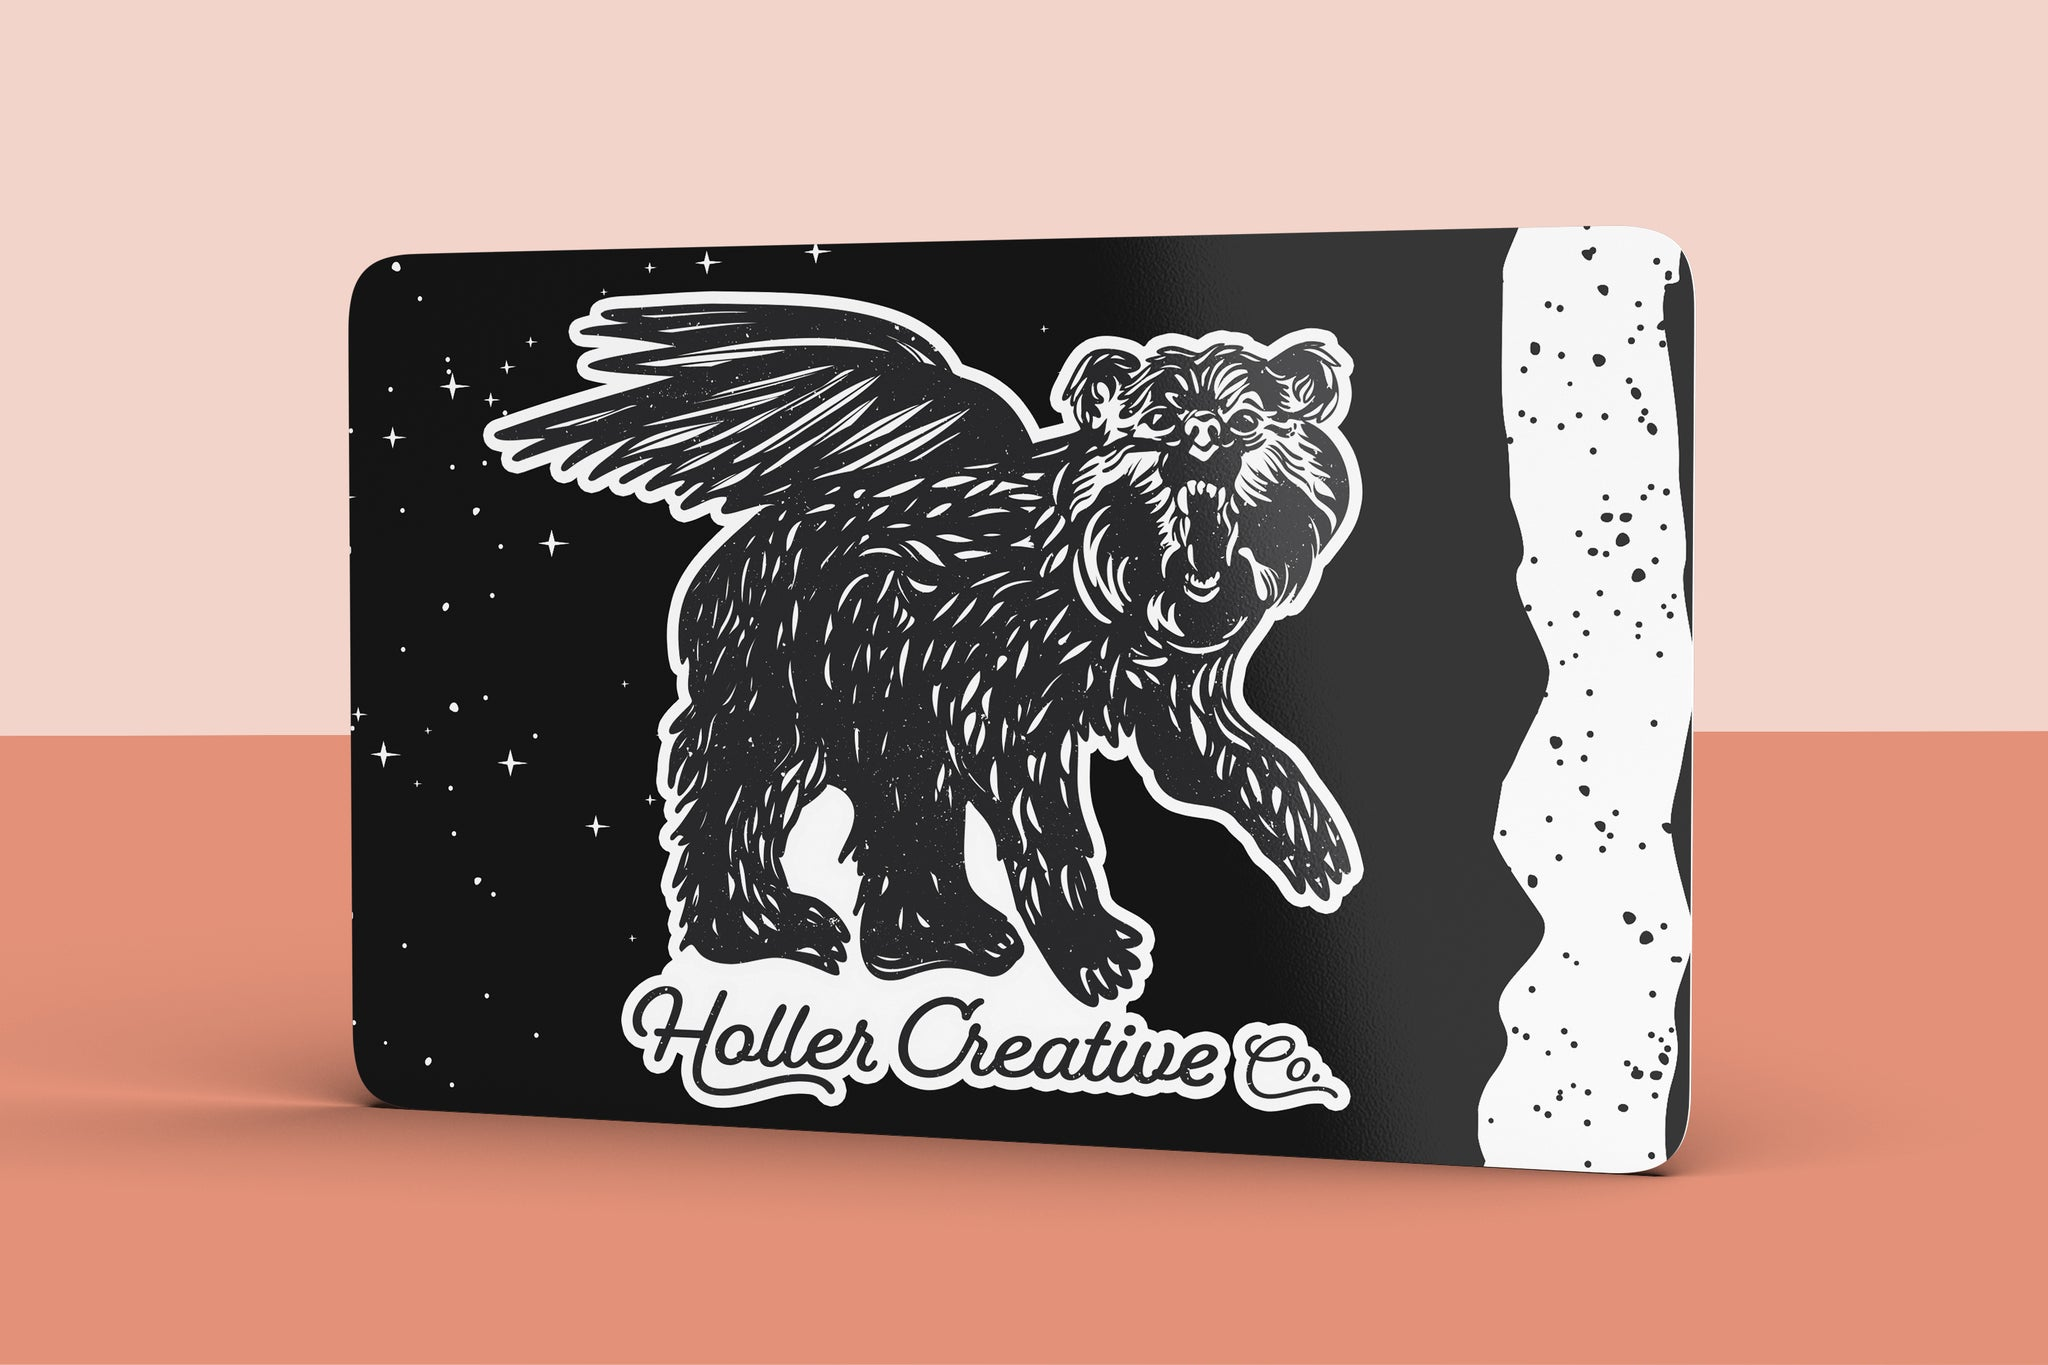 Holler Creative Company Gift Card